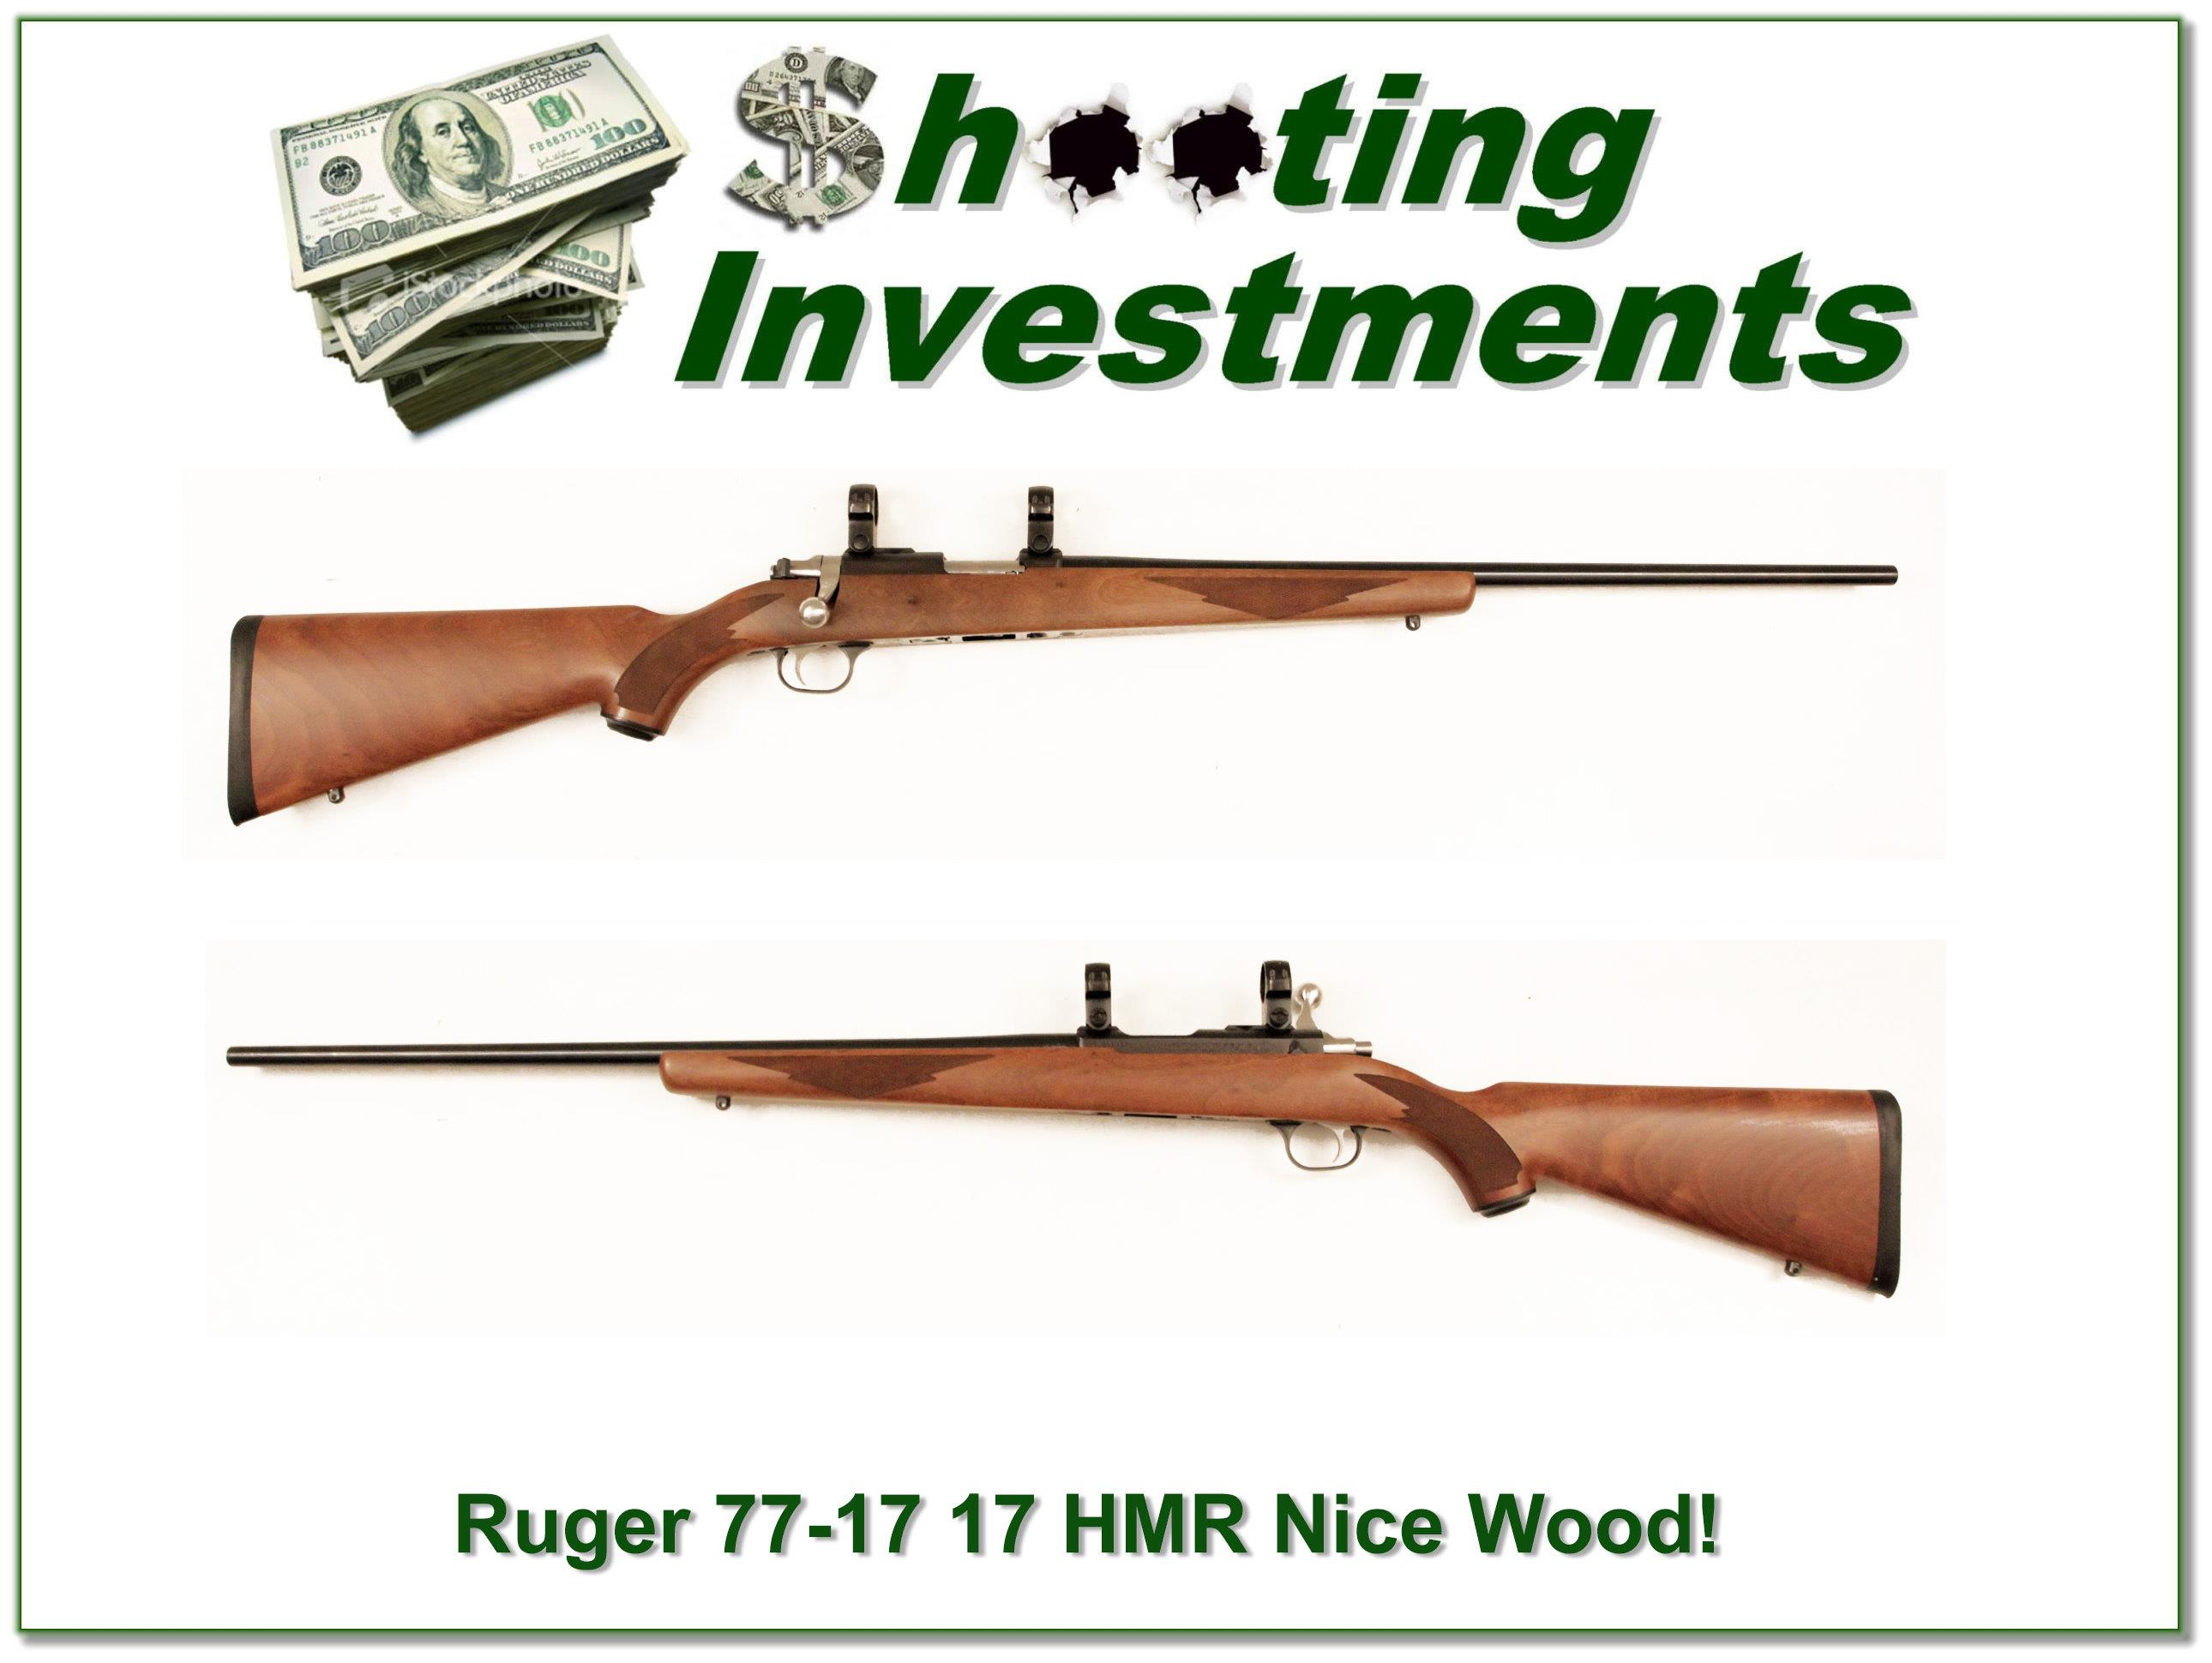 Ruger 77-17 17 HMR Nice Wood! Exc Cond!  Guns > Rifles > Ruger Rifles > Model 77